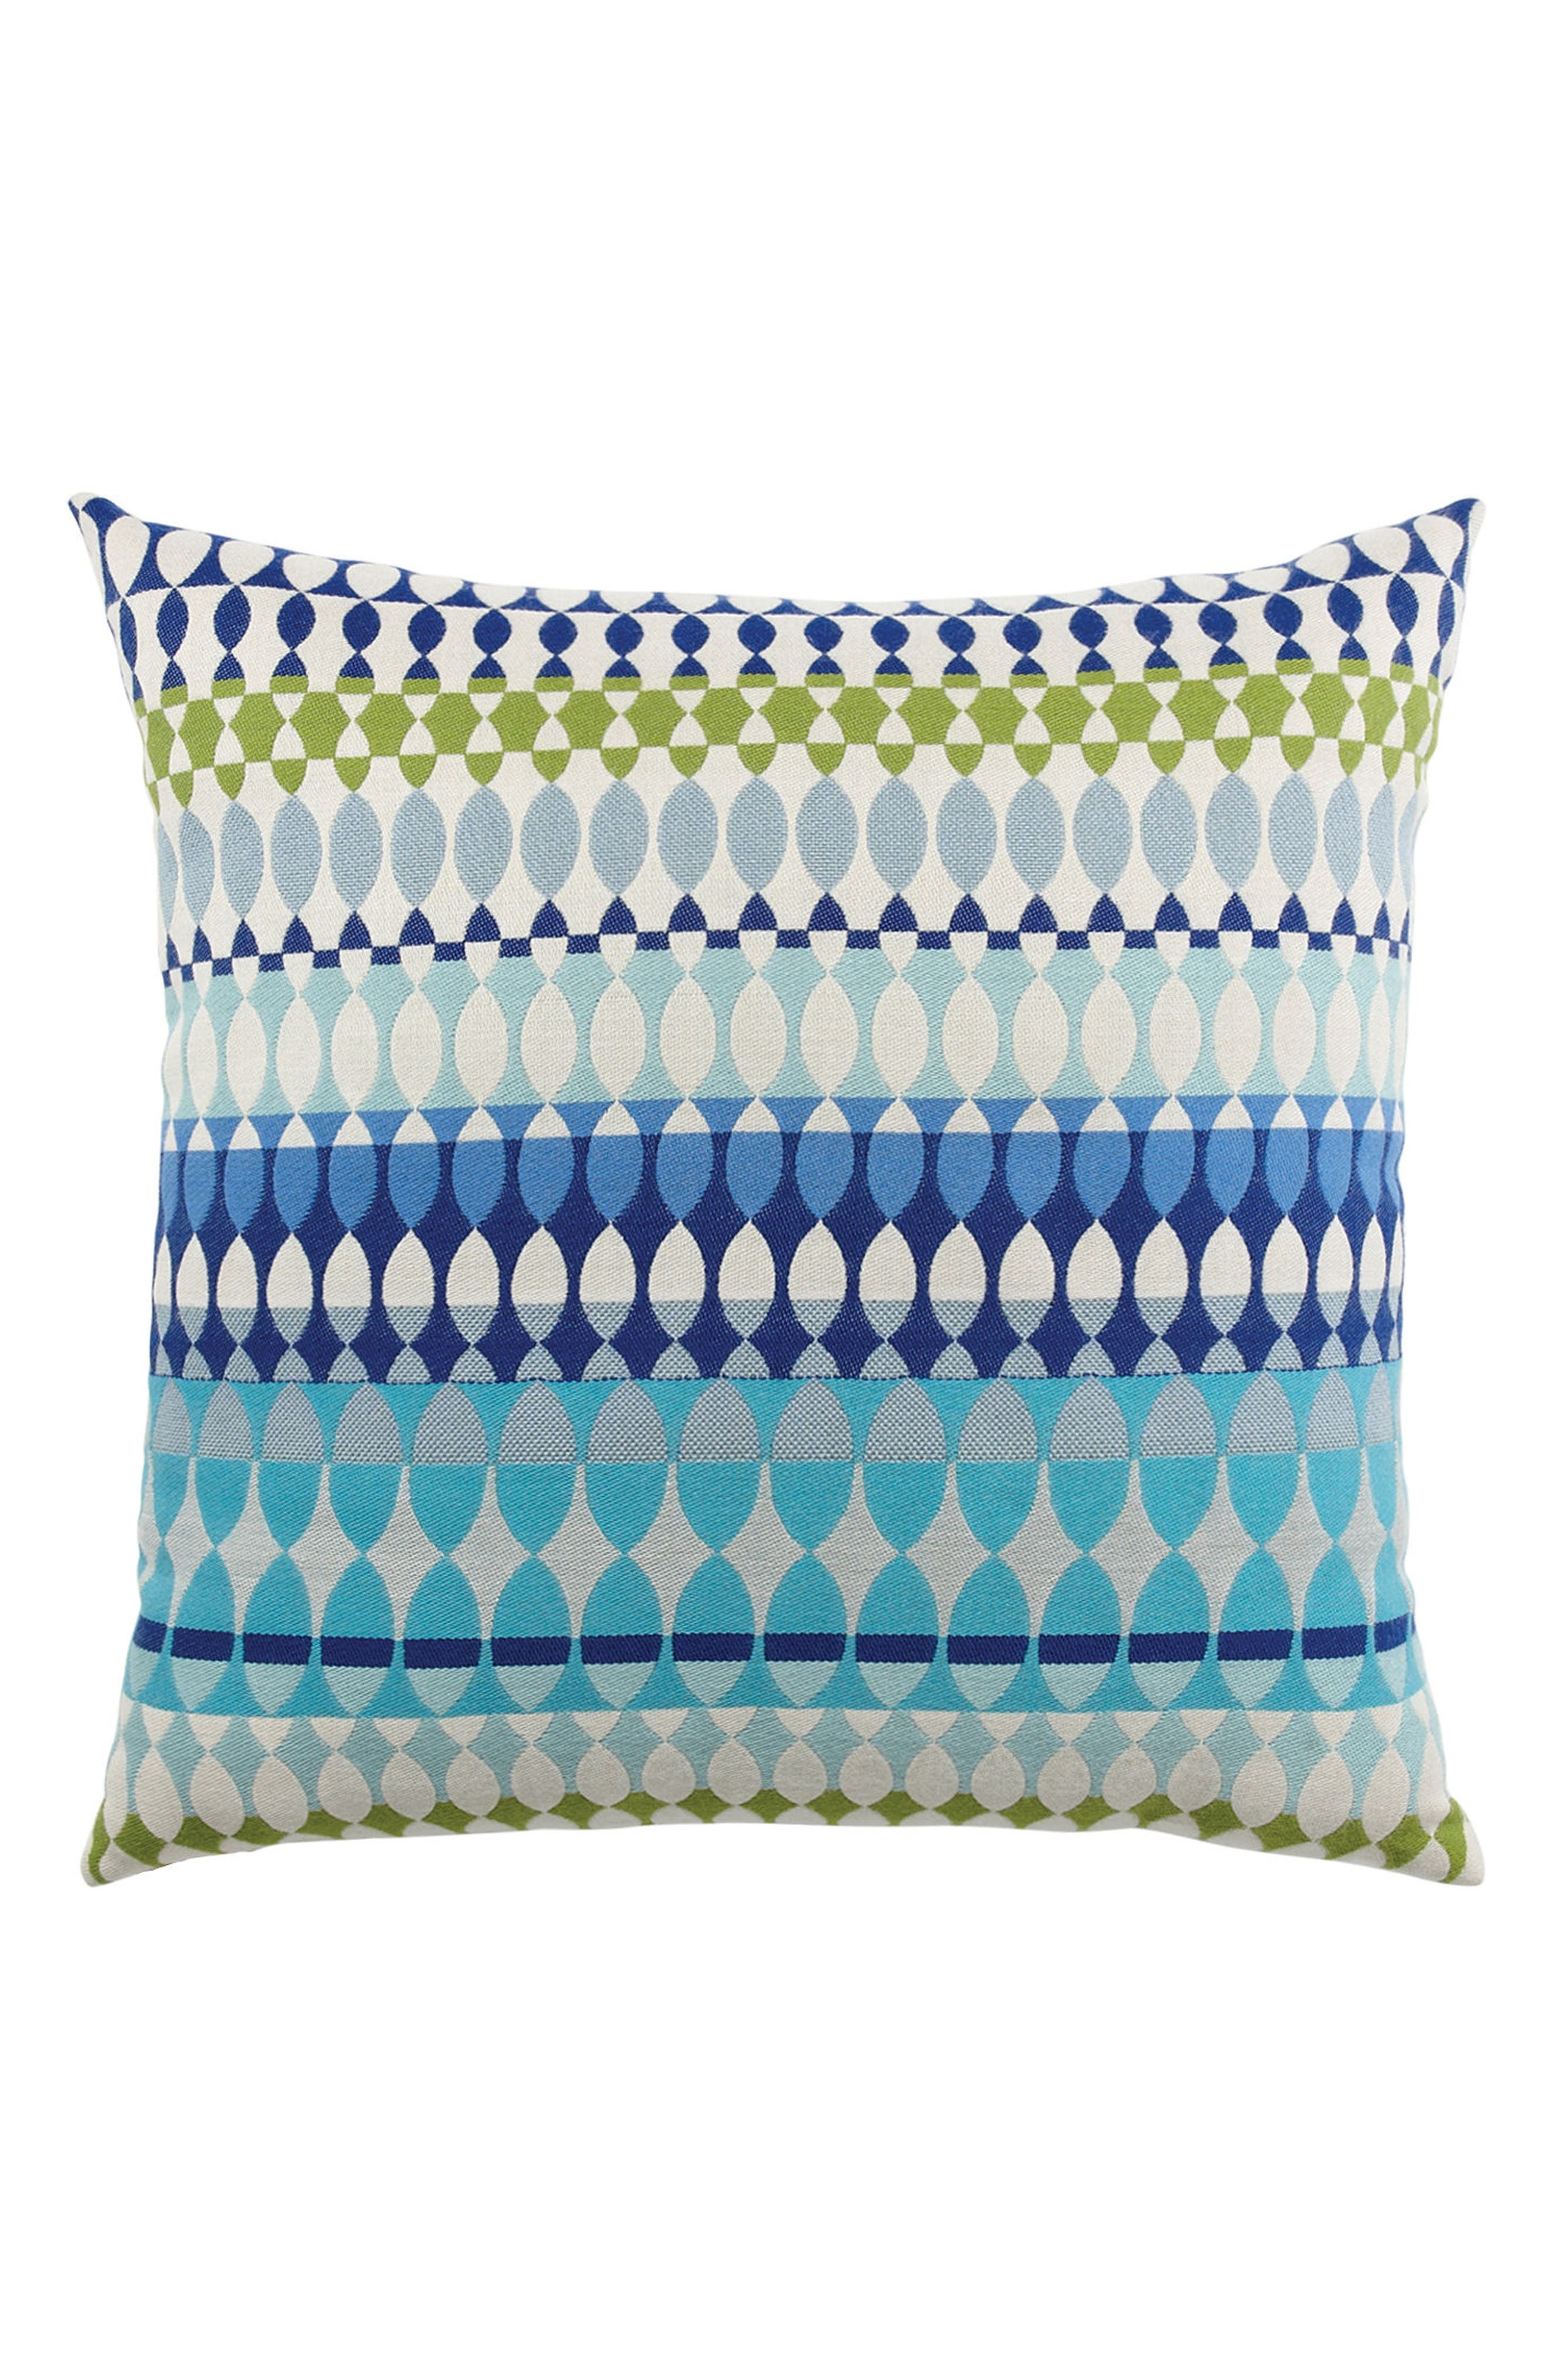 Modern Oval Ocean Indoor/Outdoor Accent Pillow,                         Main,                         color, BLUE MULTI